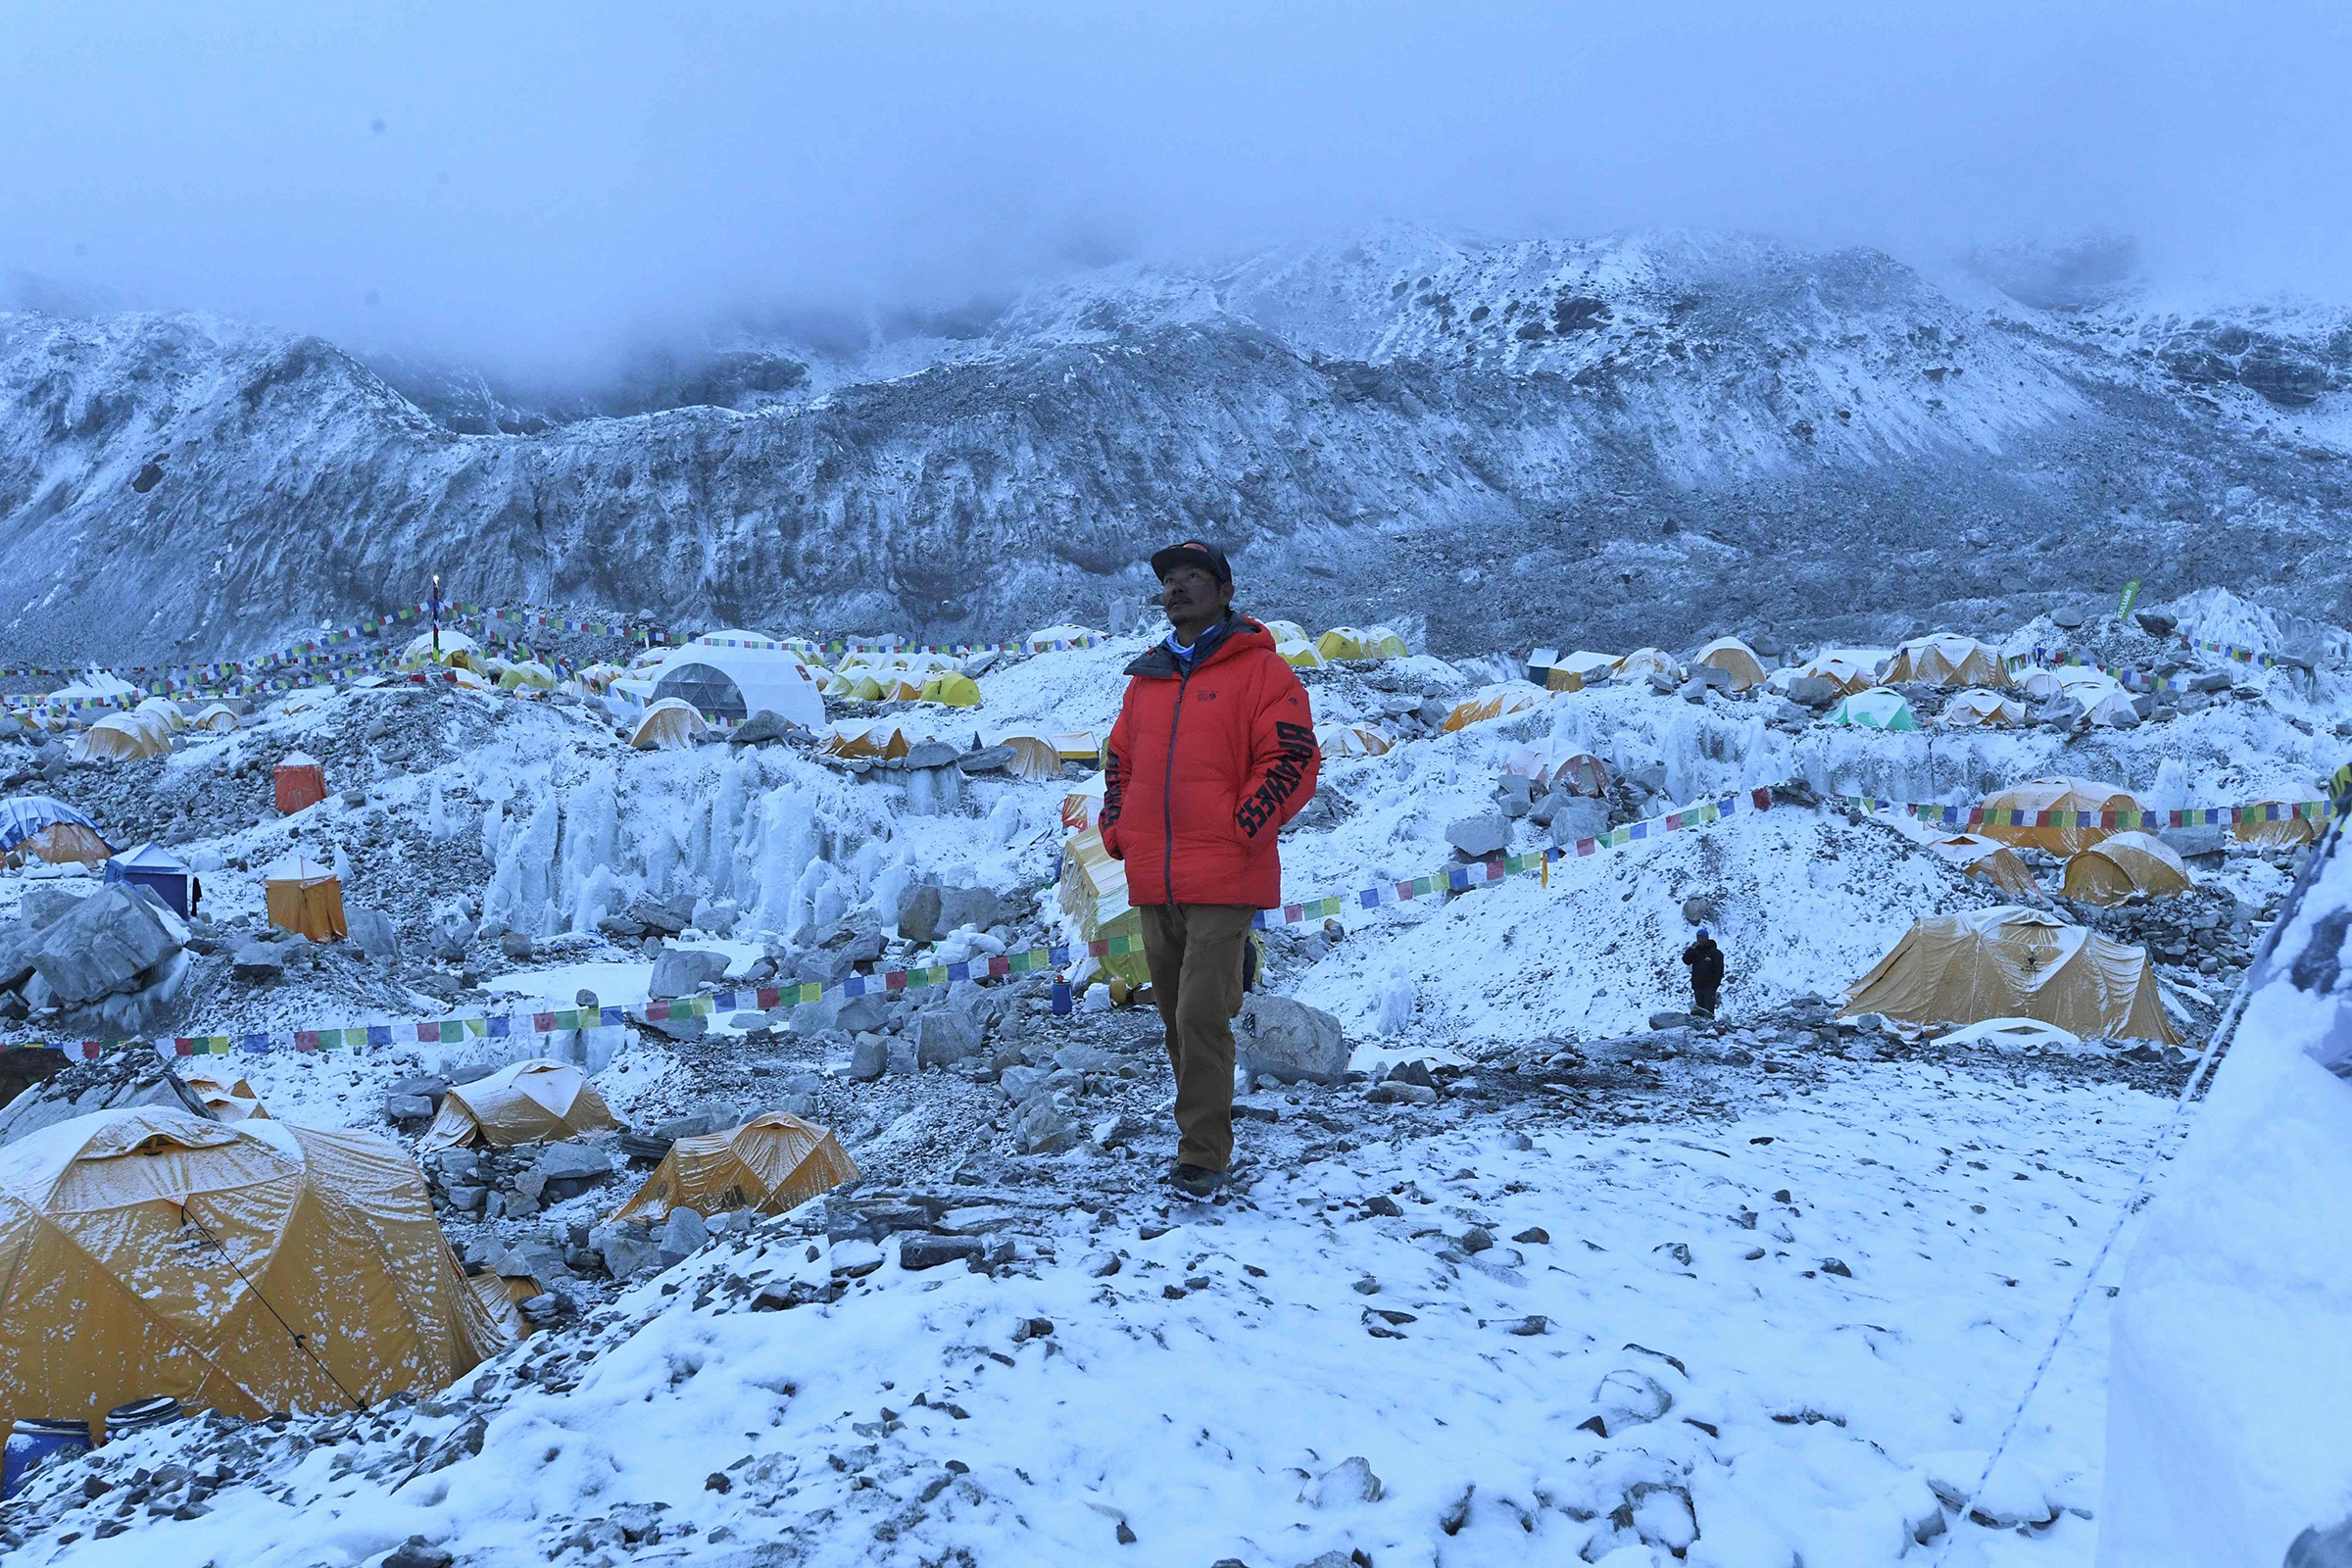 Mountaineer and expedition manager Tashi Lakpa Sherpa poses for a picture on May 1 at Everest base camp. A coronavirus outbreak on Mount Everest has seen dozens of people evacuated by helicopter from the foot of the world's highest peak, derailing Nepal's plans for a record climbing season.